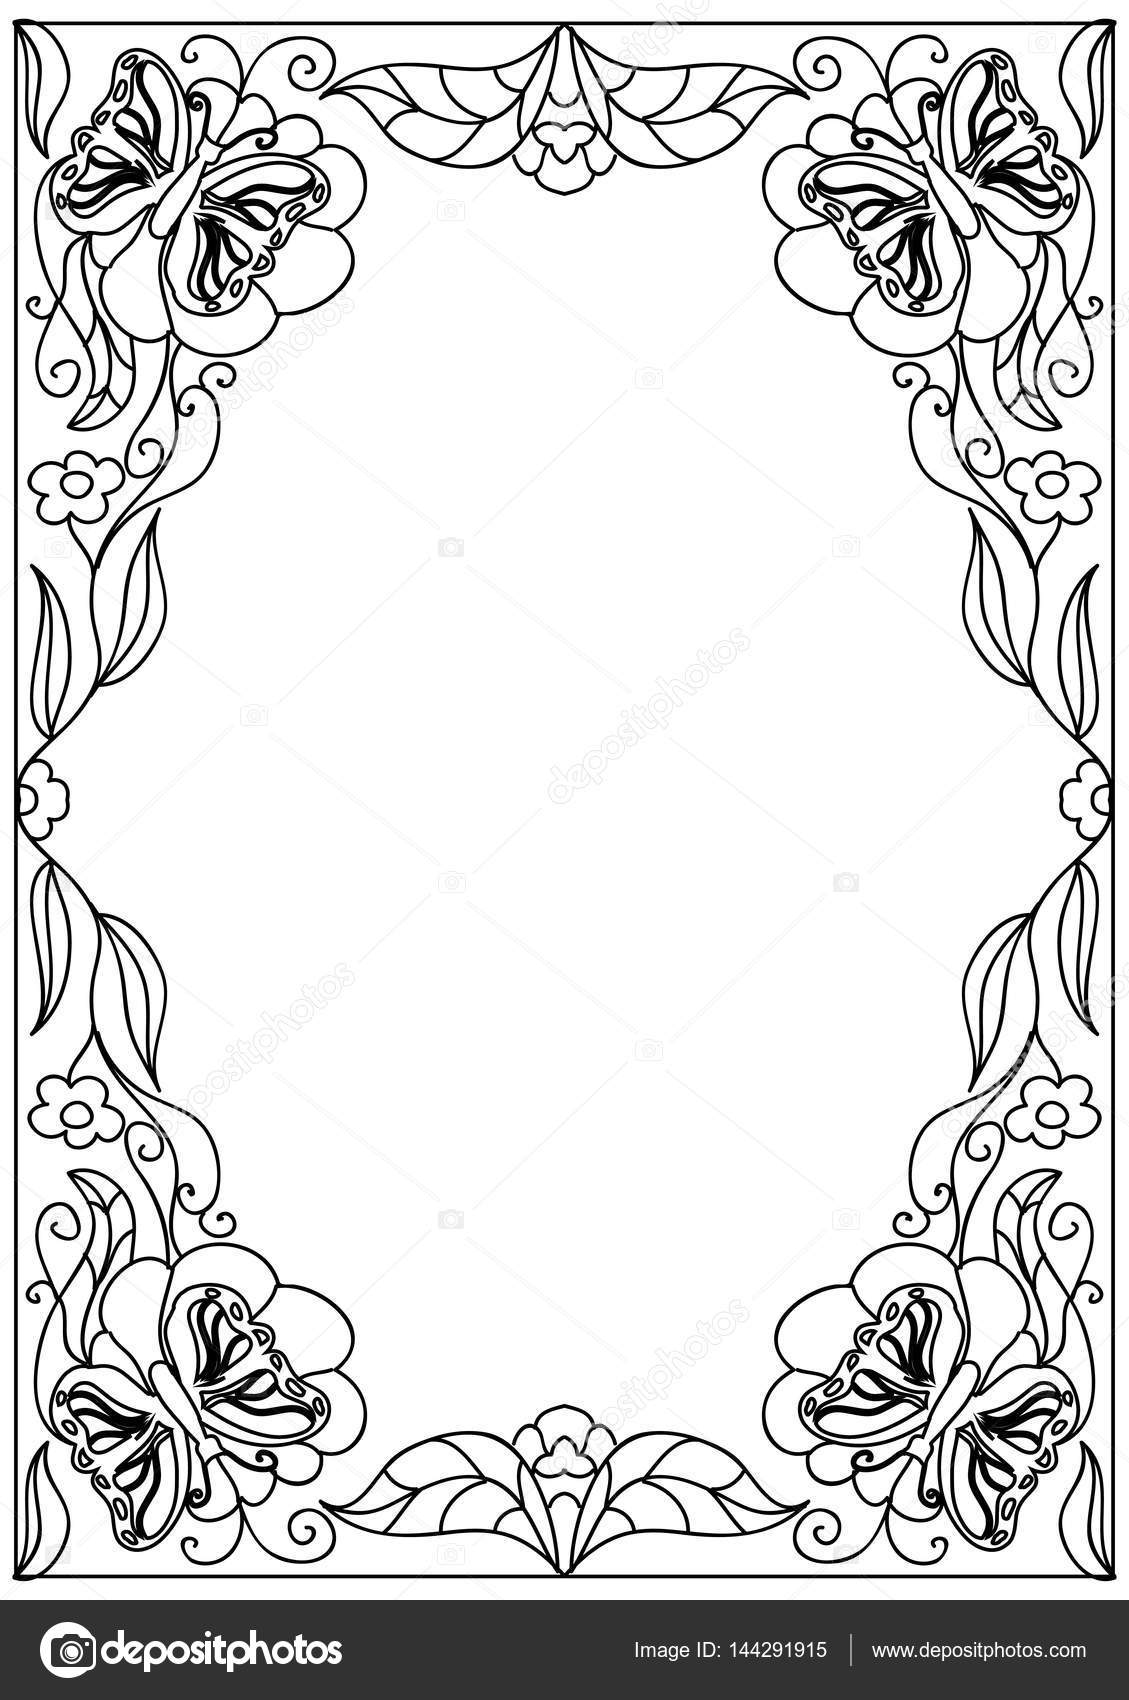 Página de marco decorativo de flores para colorear — Vector de stock ...